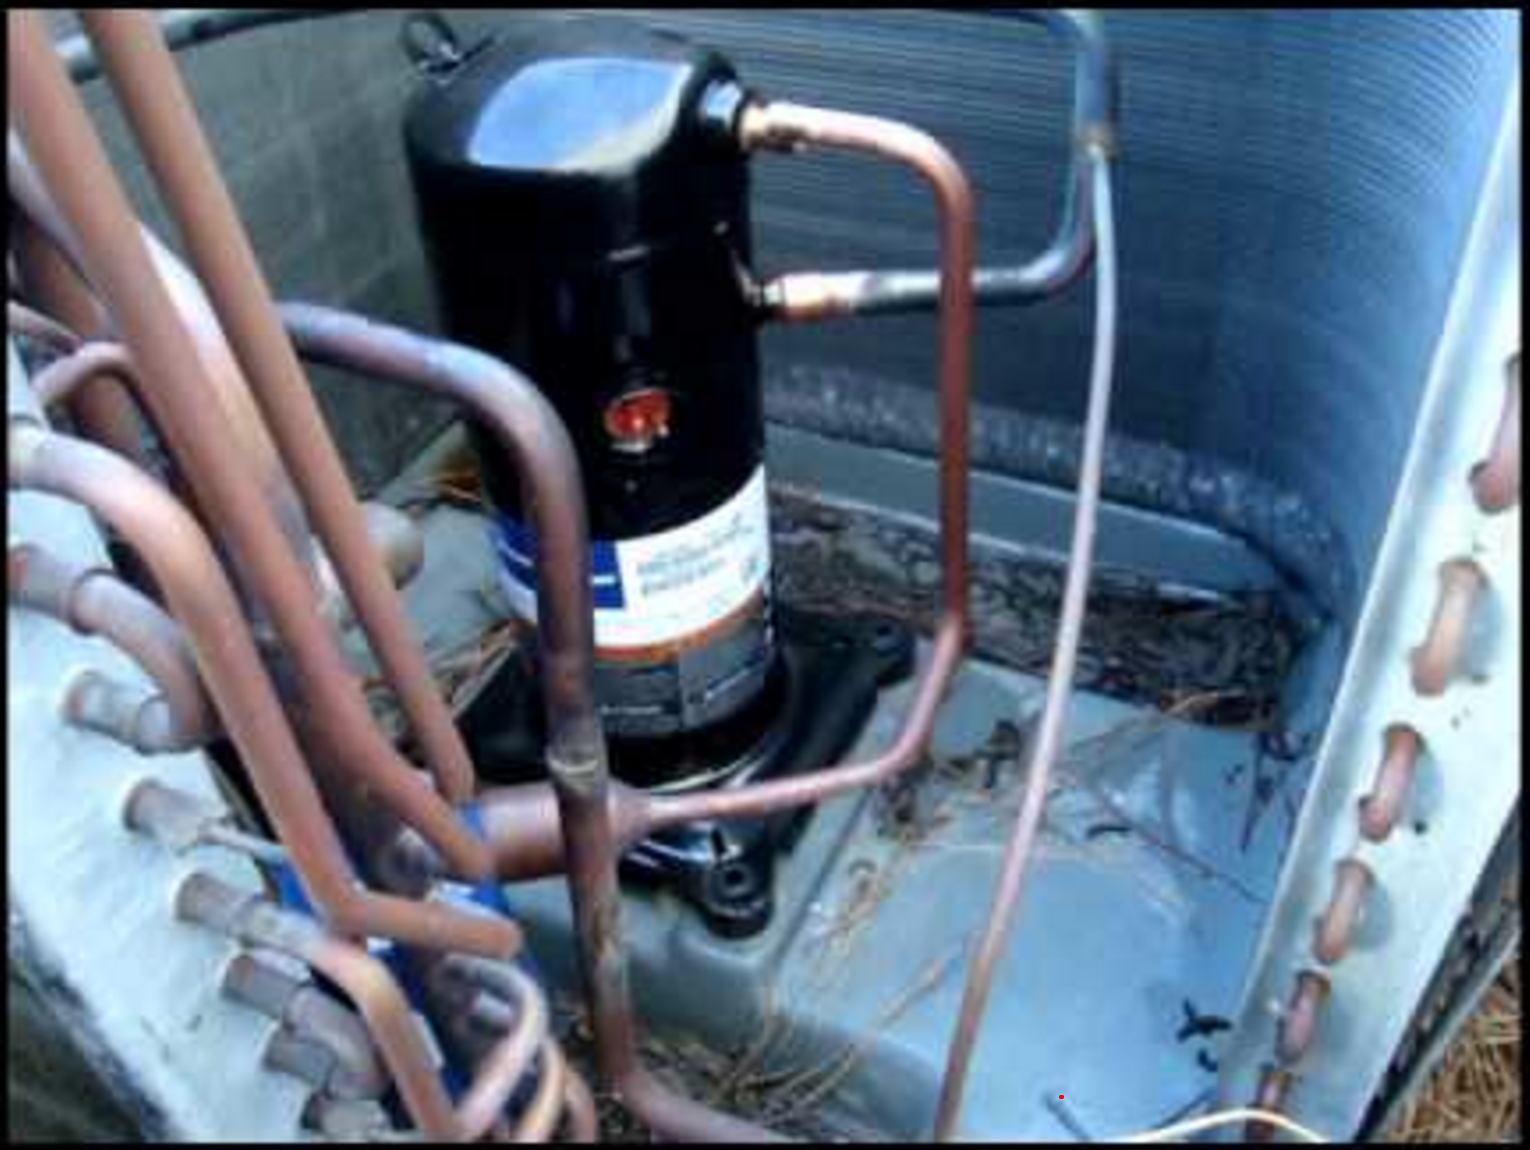 Compressor within an AC unit